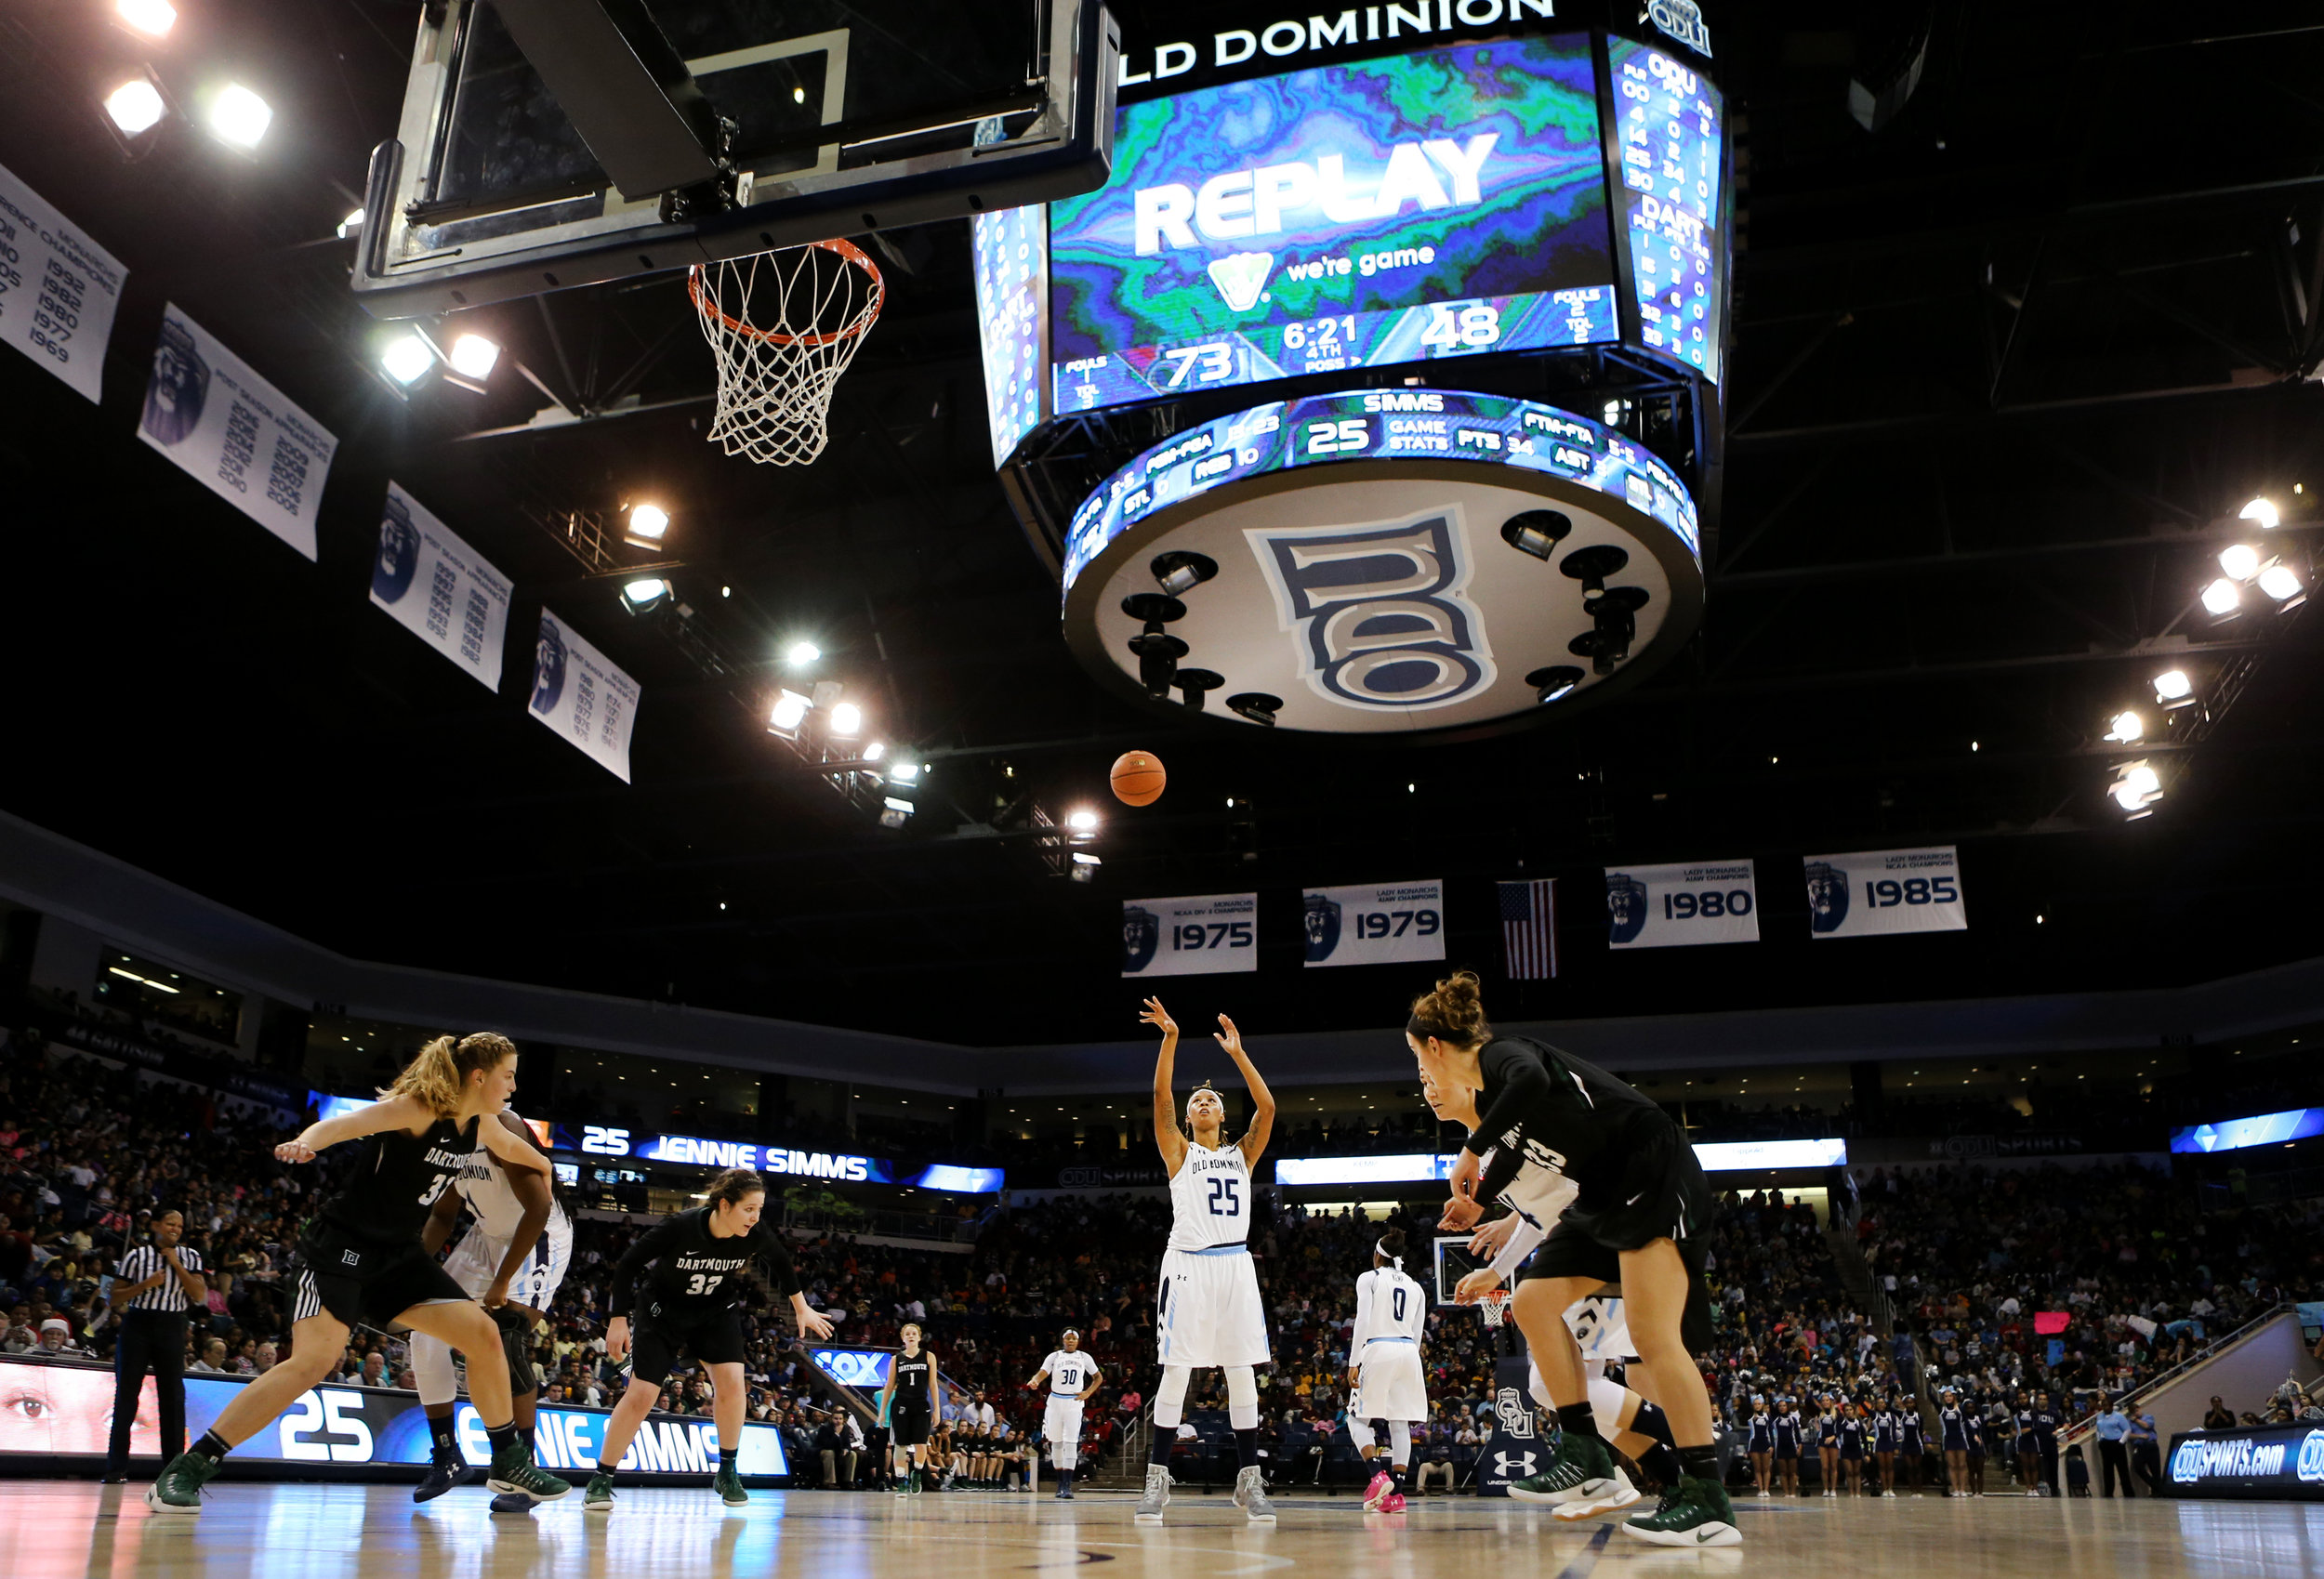 Old Dominion's Jennie Simms shoots a pair of free throws for two of her game-high 35 points in ODU's 82-56 rout, Wednesday, Nov. 30, 2016 at the Constant Center in Norfolk.